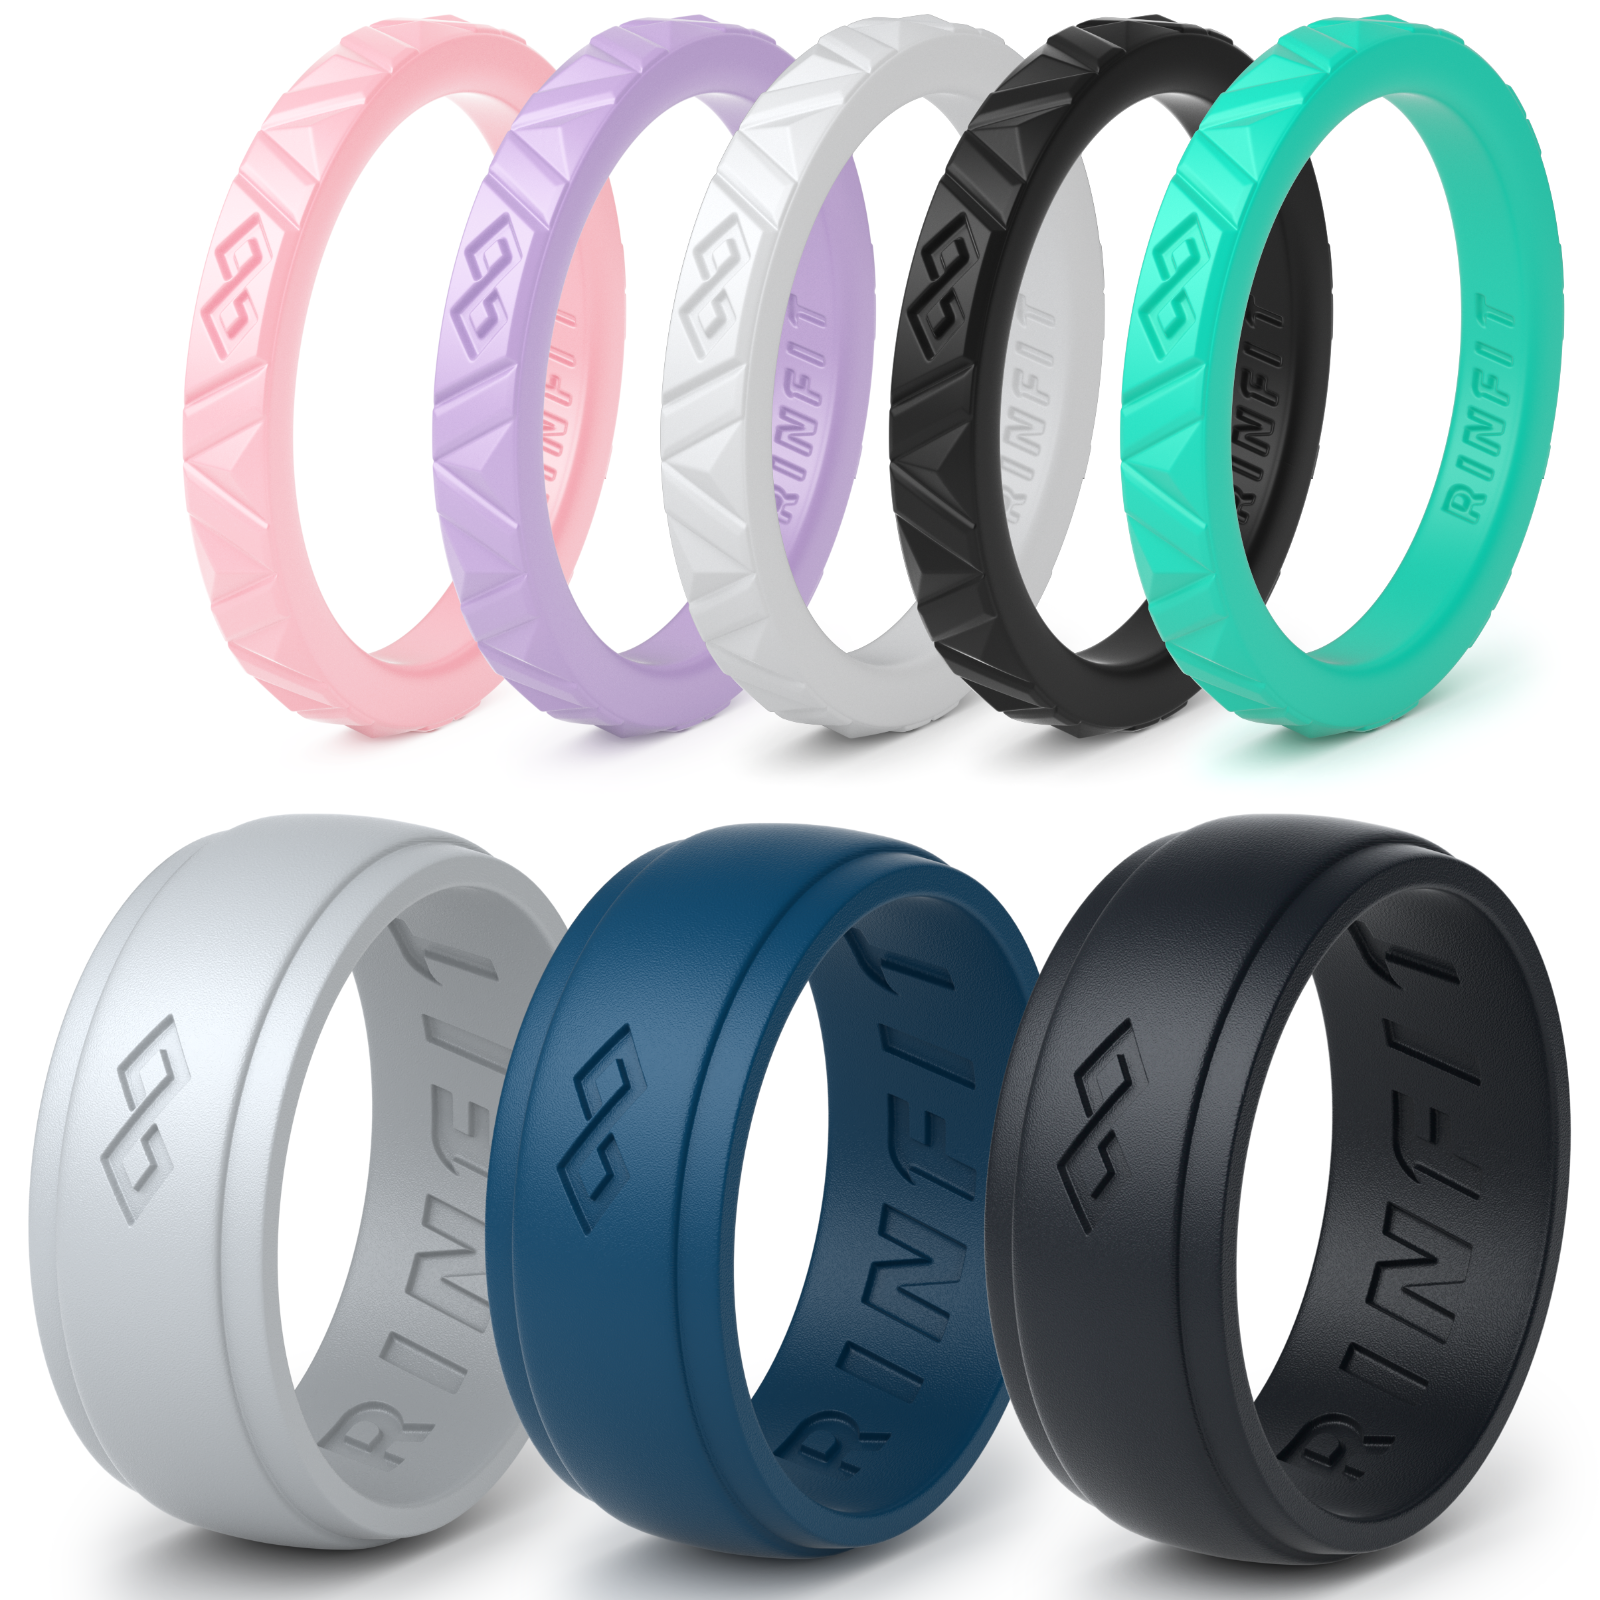 Free 2 Day Shipping Buy Rubber Wedding Bands For Men And Women 8 Ring Pack At Walmart Com In 2020 Rubber Wedding Band Rubber Rings Wedding Mens Rubber Wedding Band